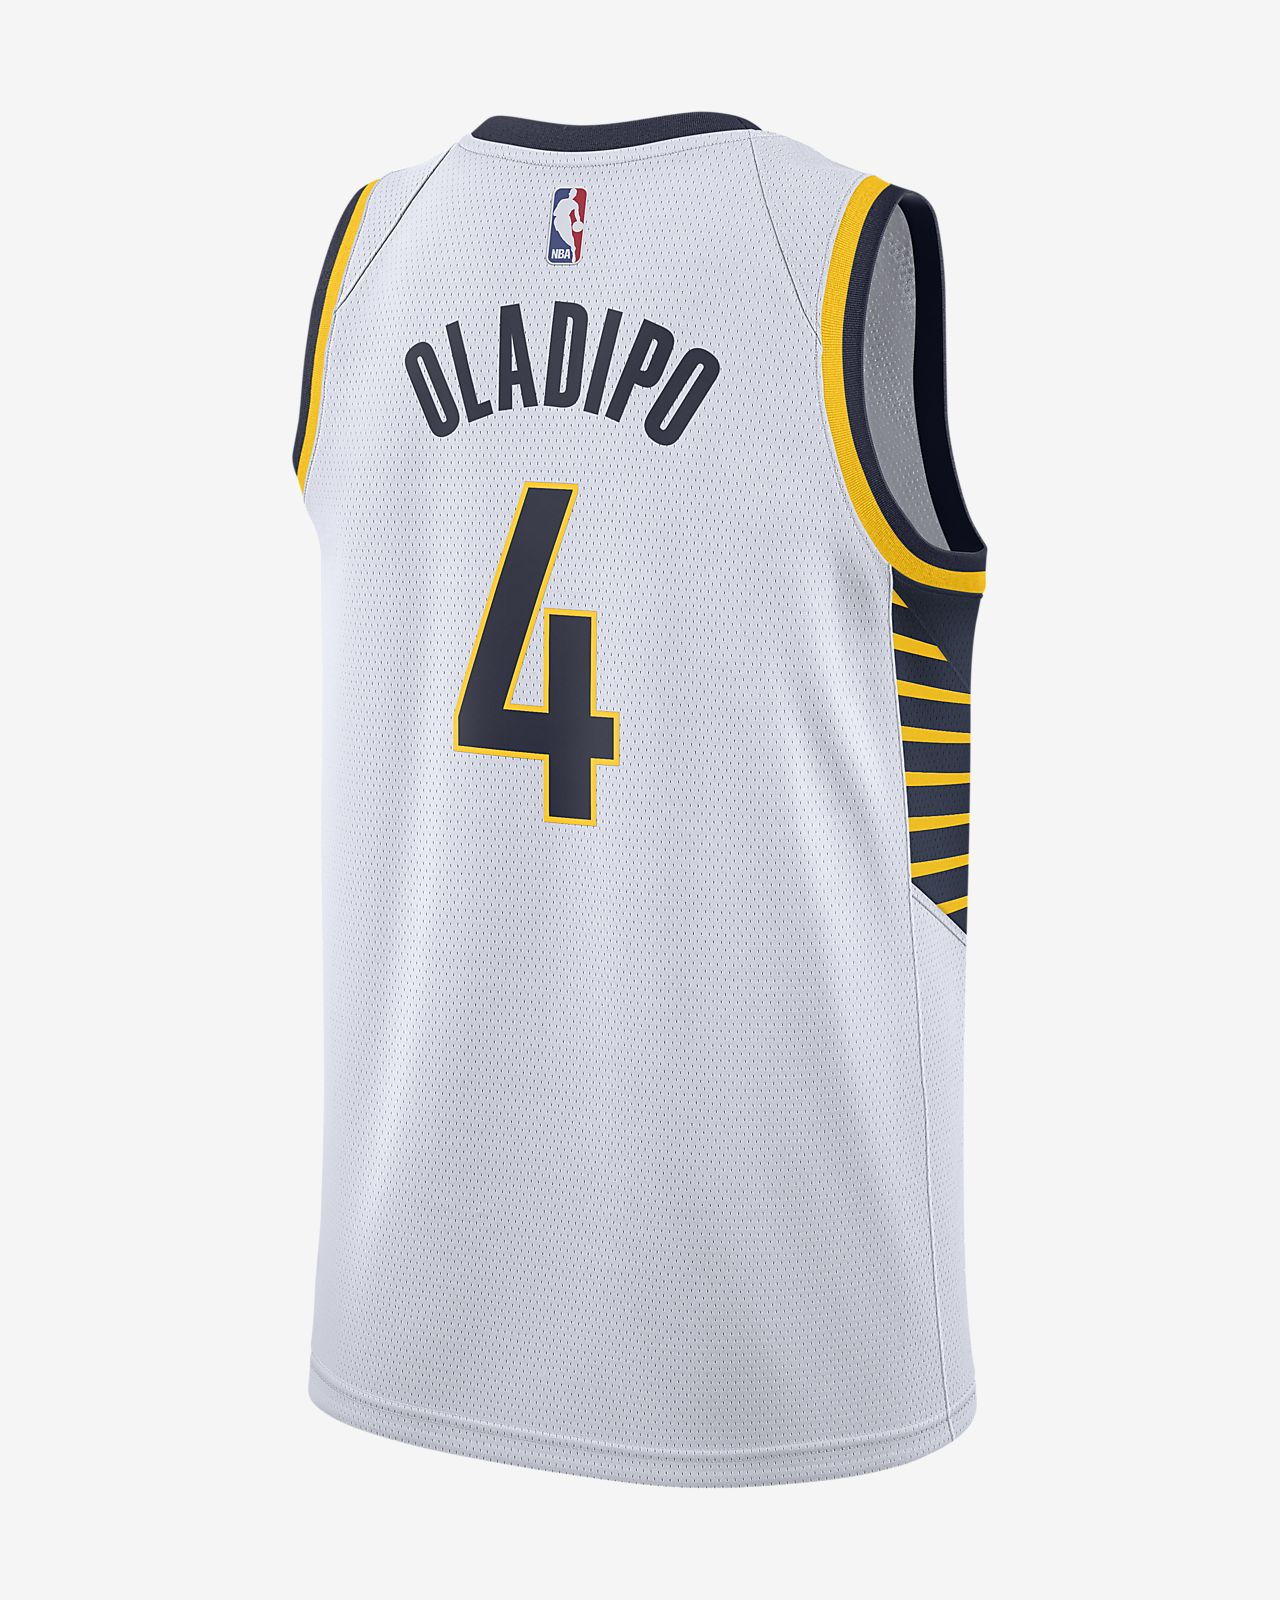 quality design 9e1a7 a054e Victor Oladipo Association Edition Swingman Jersey (Indiana Pacers) Men's  Nike NBA Connected Jersey